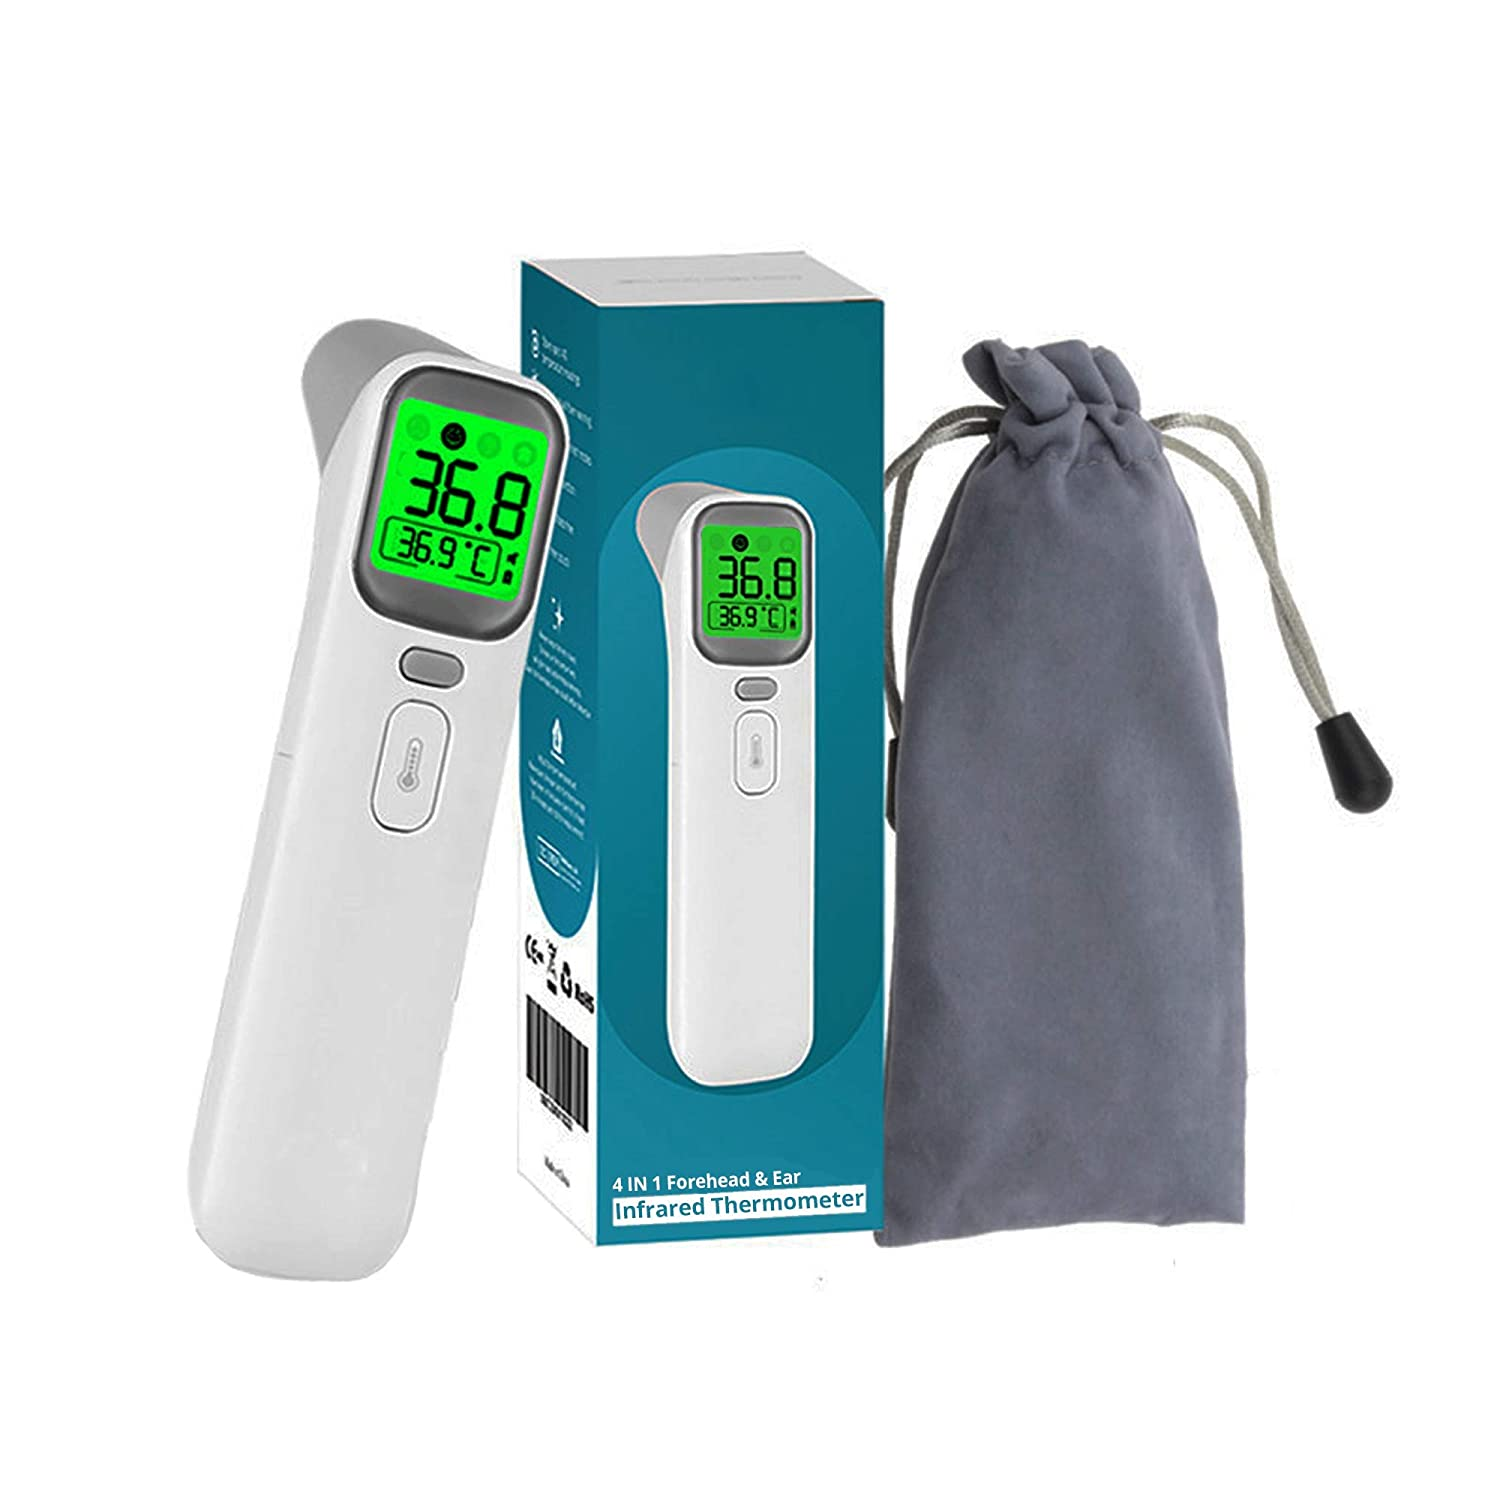 Fever Alarm and Memory Function,FDA Cleared Forehead Thermometer for Fever Non-Contact Temporal Thermometer with Instant Accurate Reading Digital Infrared Thermometer for Baby and Adults